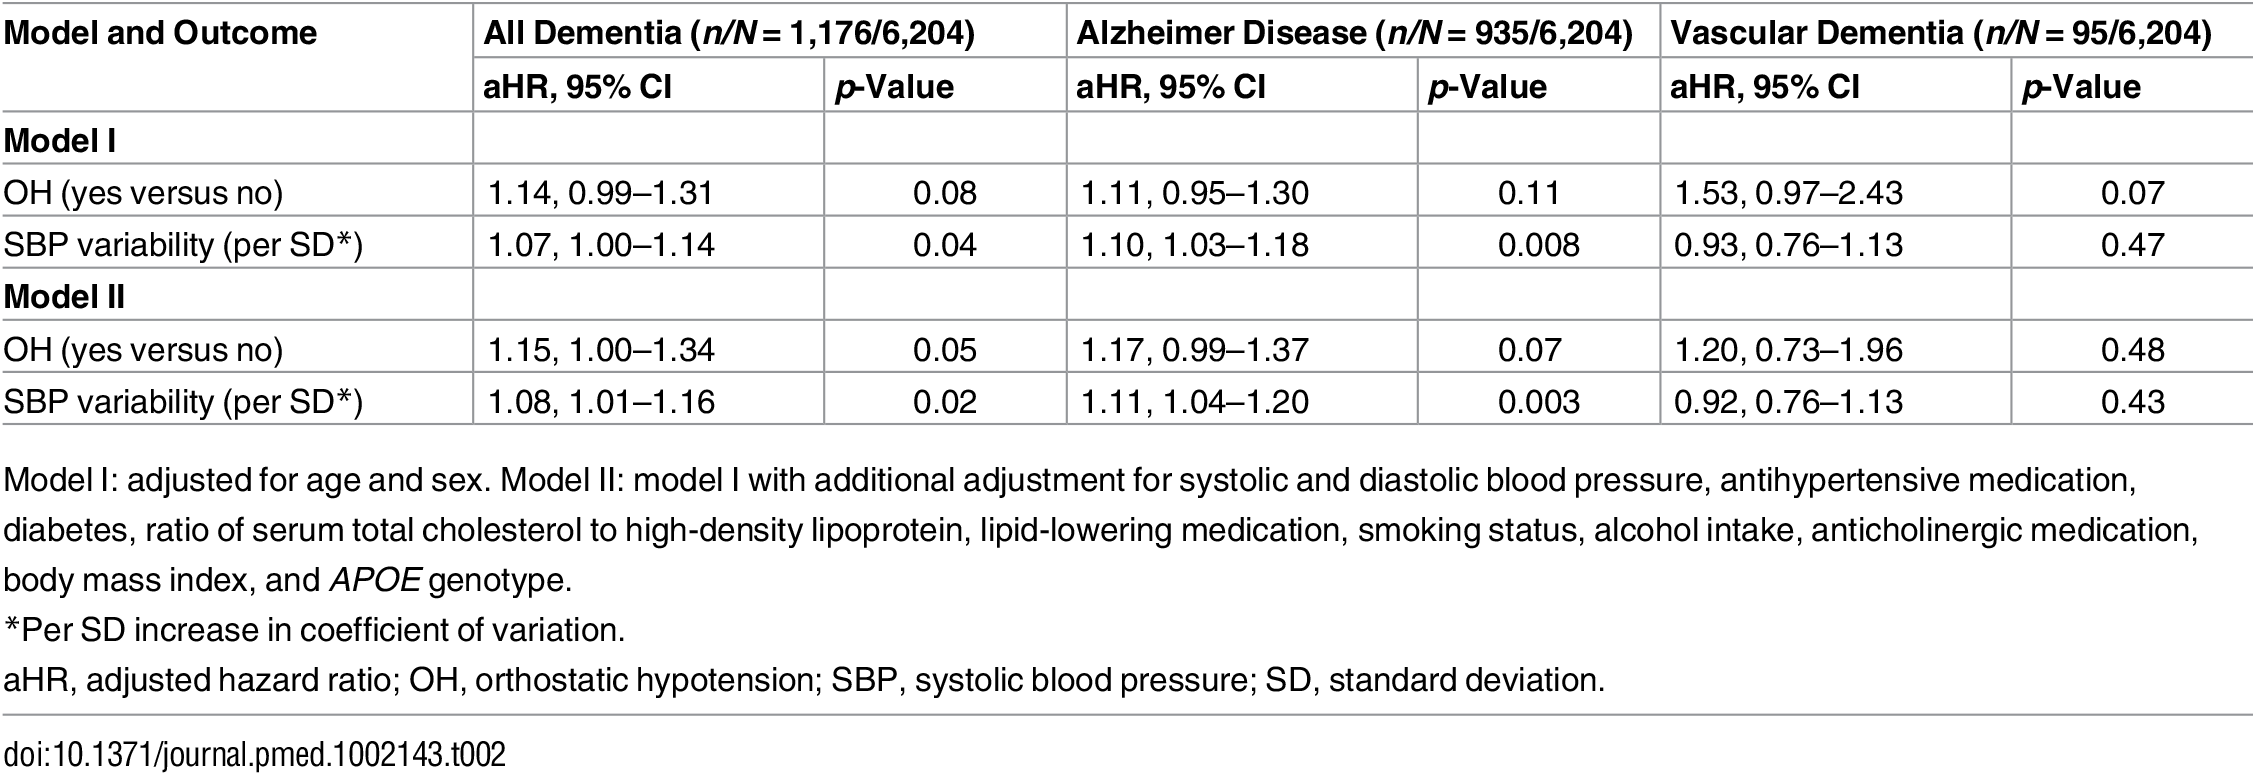 Orthostatic hypotension and the risk of dementia.